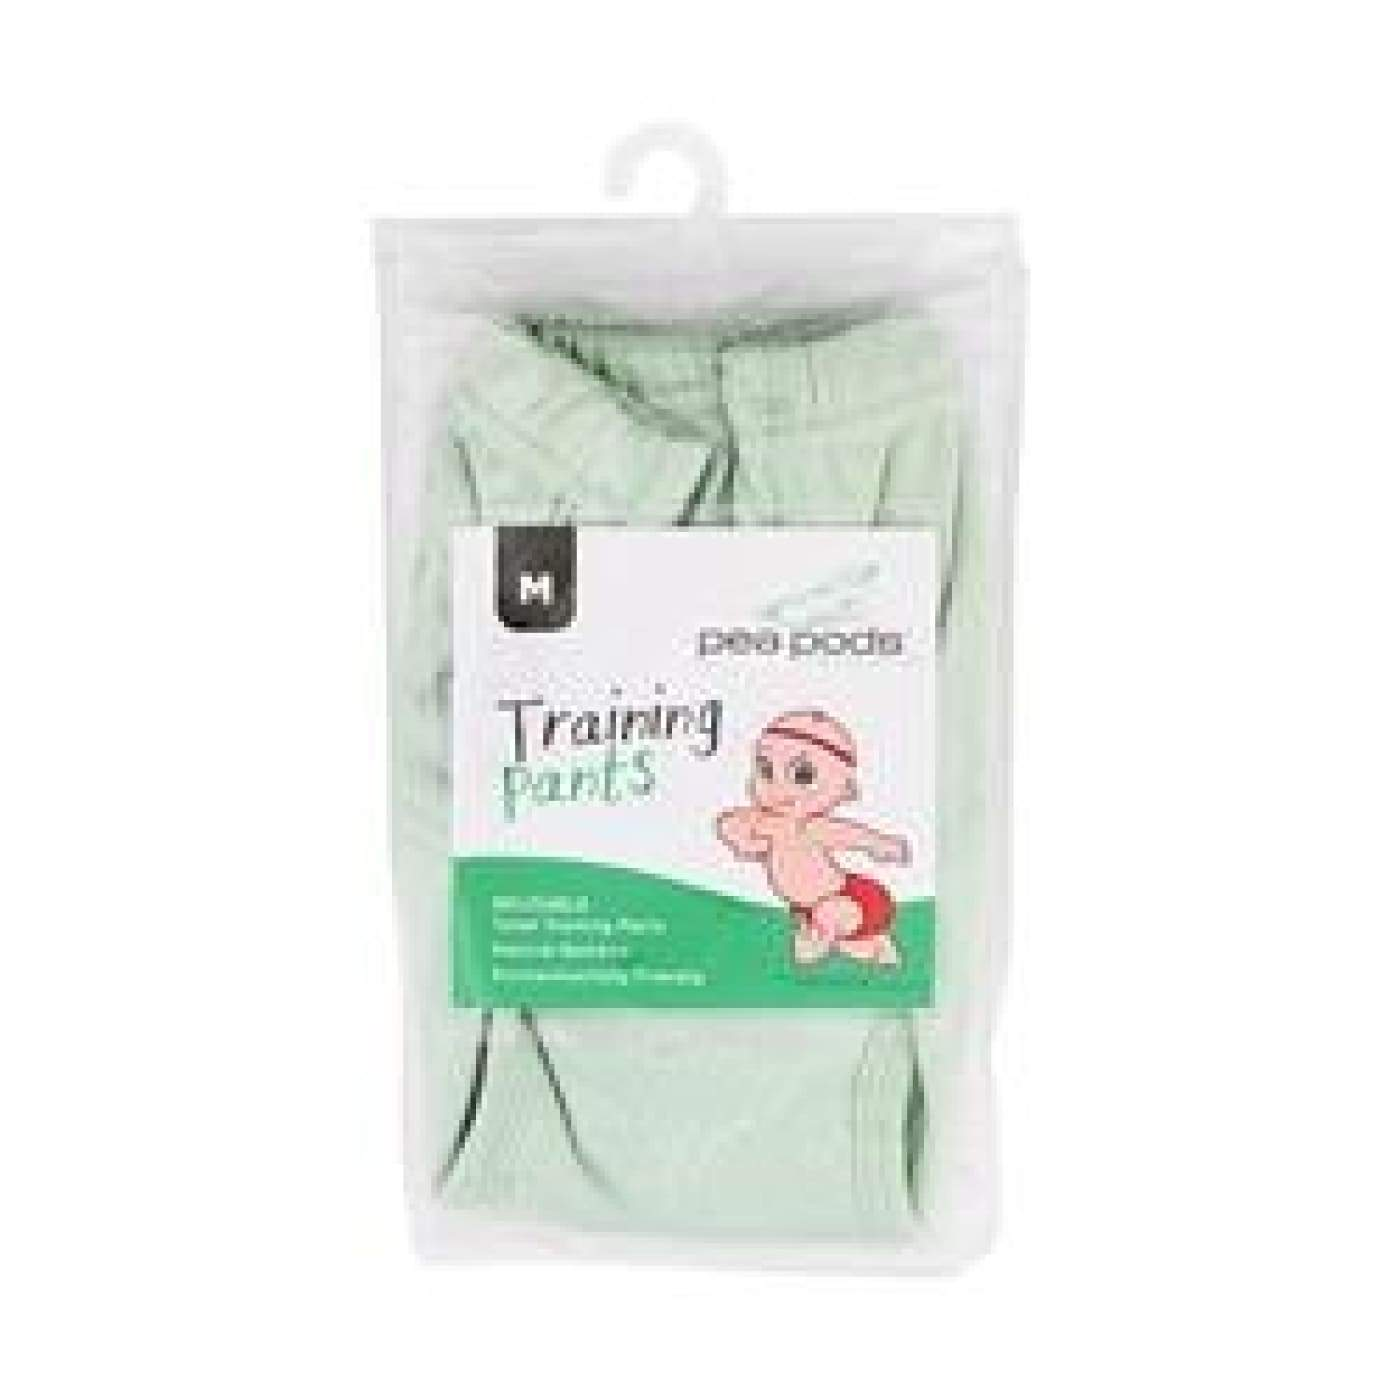 Pea Pods Training Pants Extra Large - Pea Green - BATHTIME & CHANGING - NAPPIES/WIPES/ACC ECO RANGE